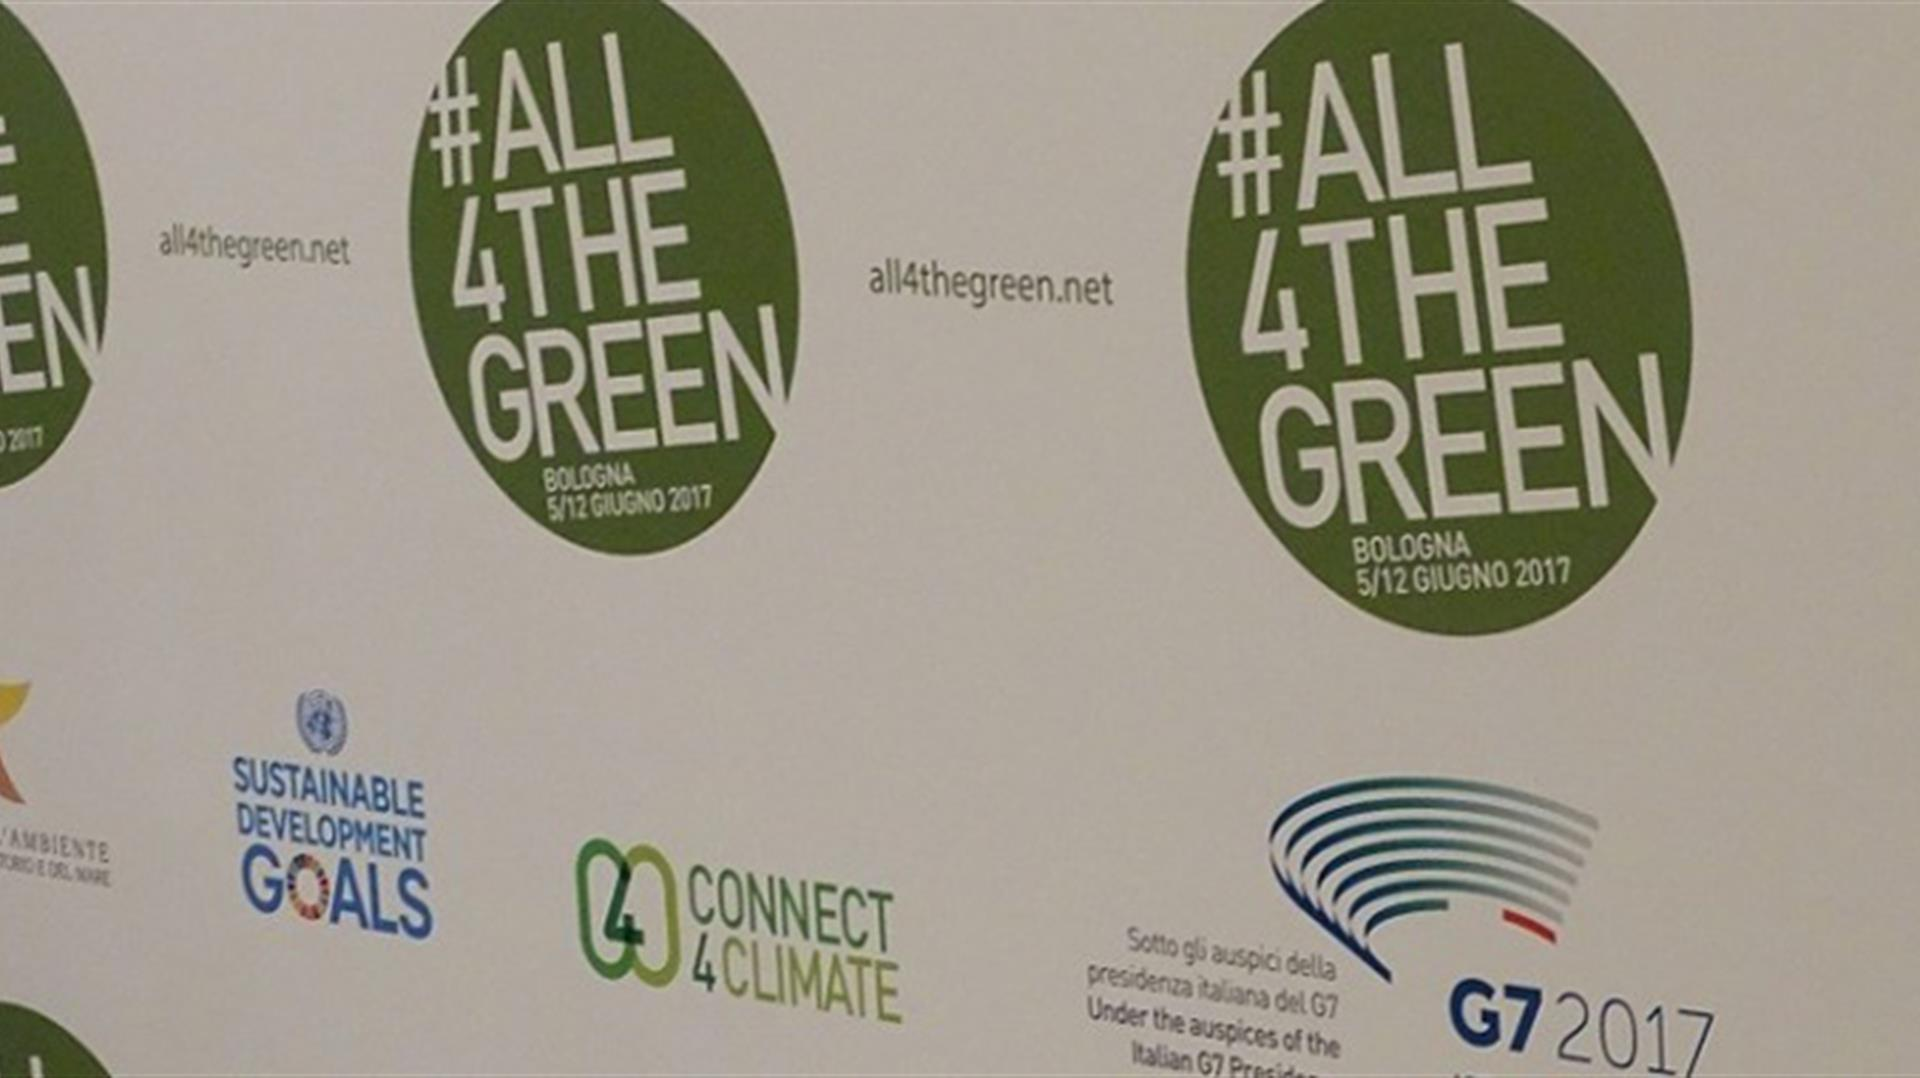 all_4_the_green